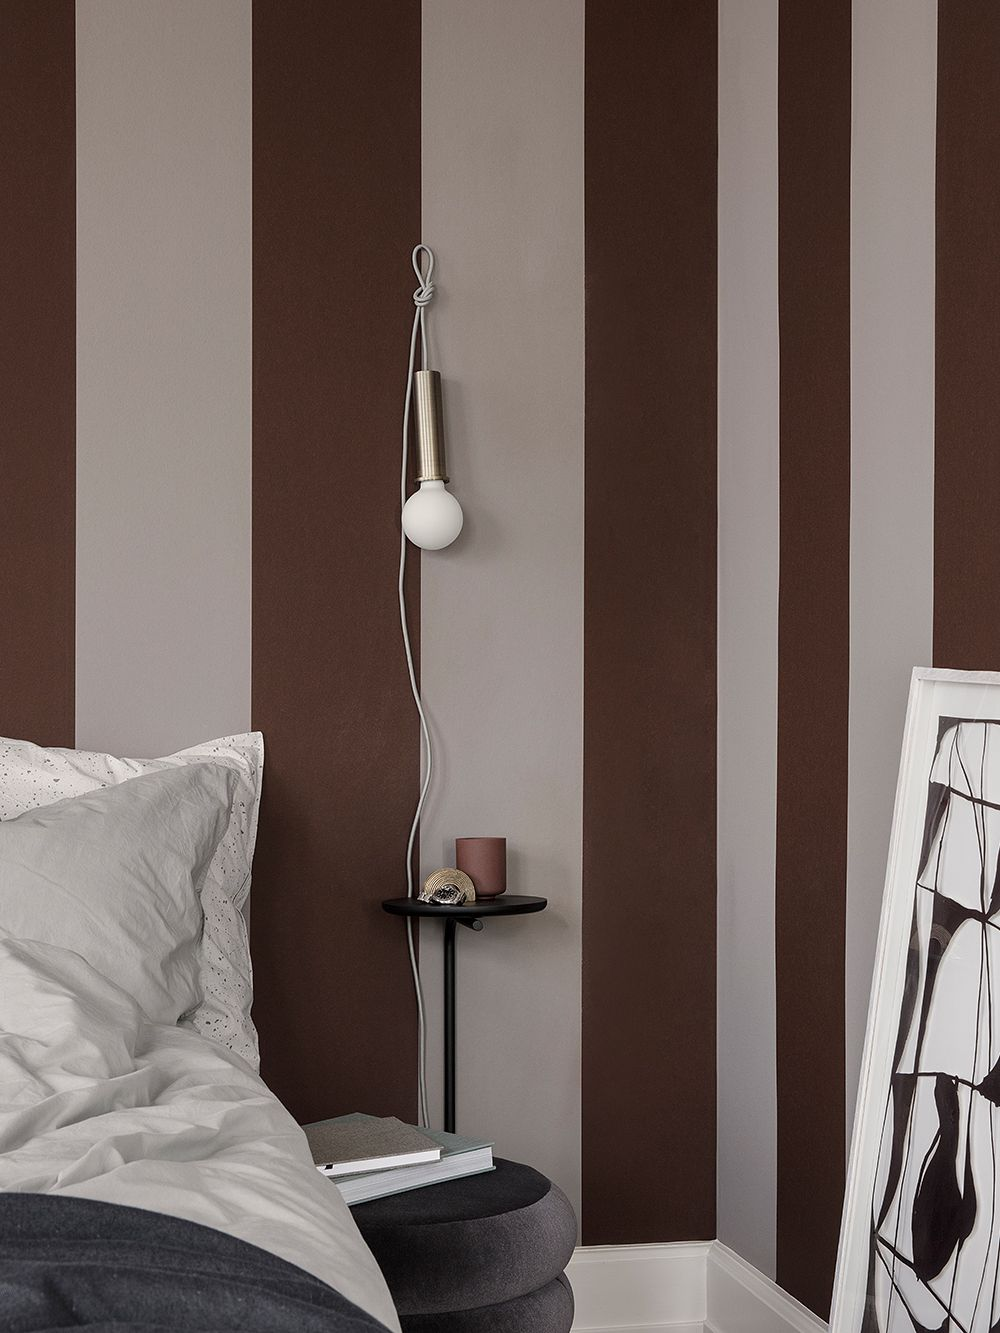 Ferm Living's Socket Pendant hung up on the wall in a bedroom.